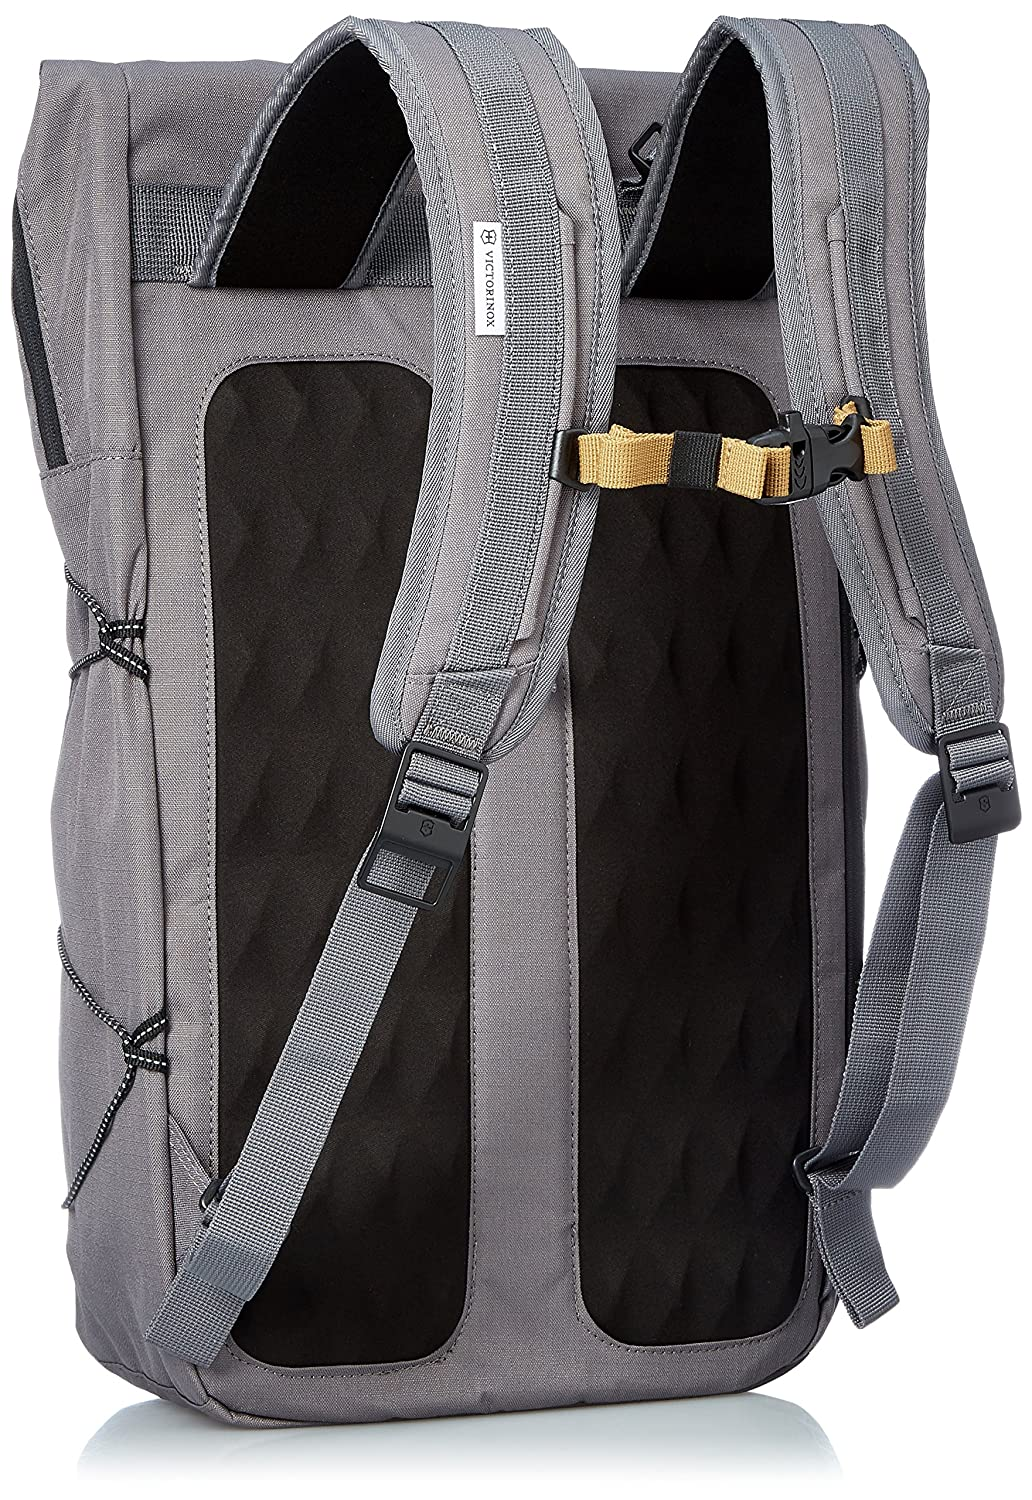 Amazon.com: Victorinox Altmont Active Deluxe Duffel Laptop Backpack, Grey One Size: LuggagePlanet